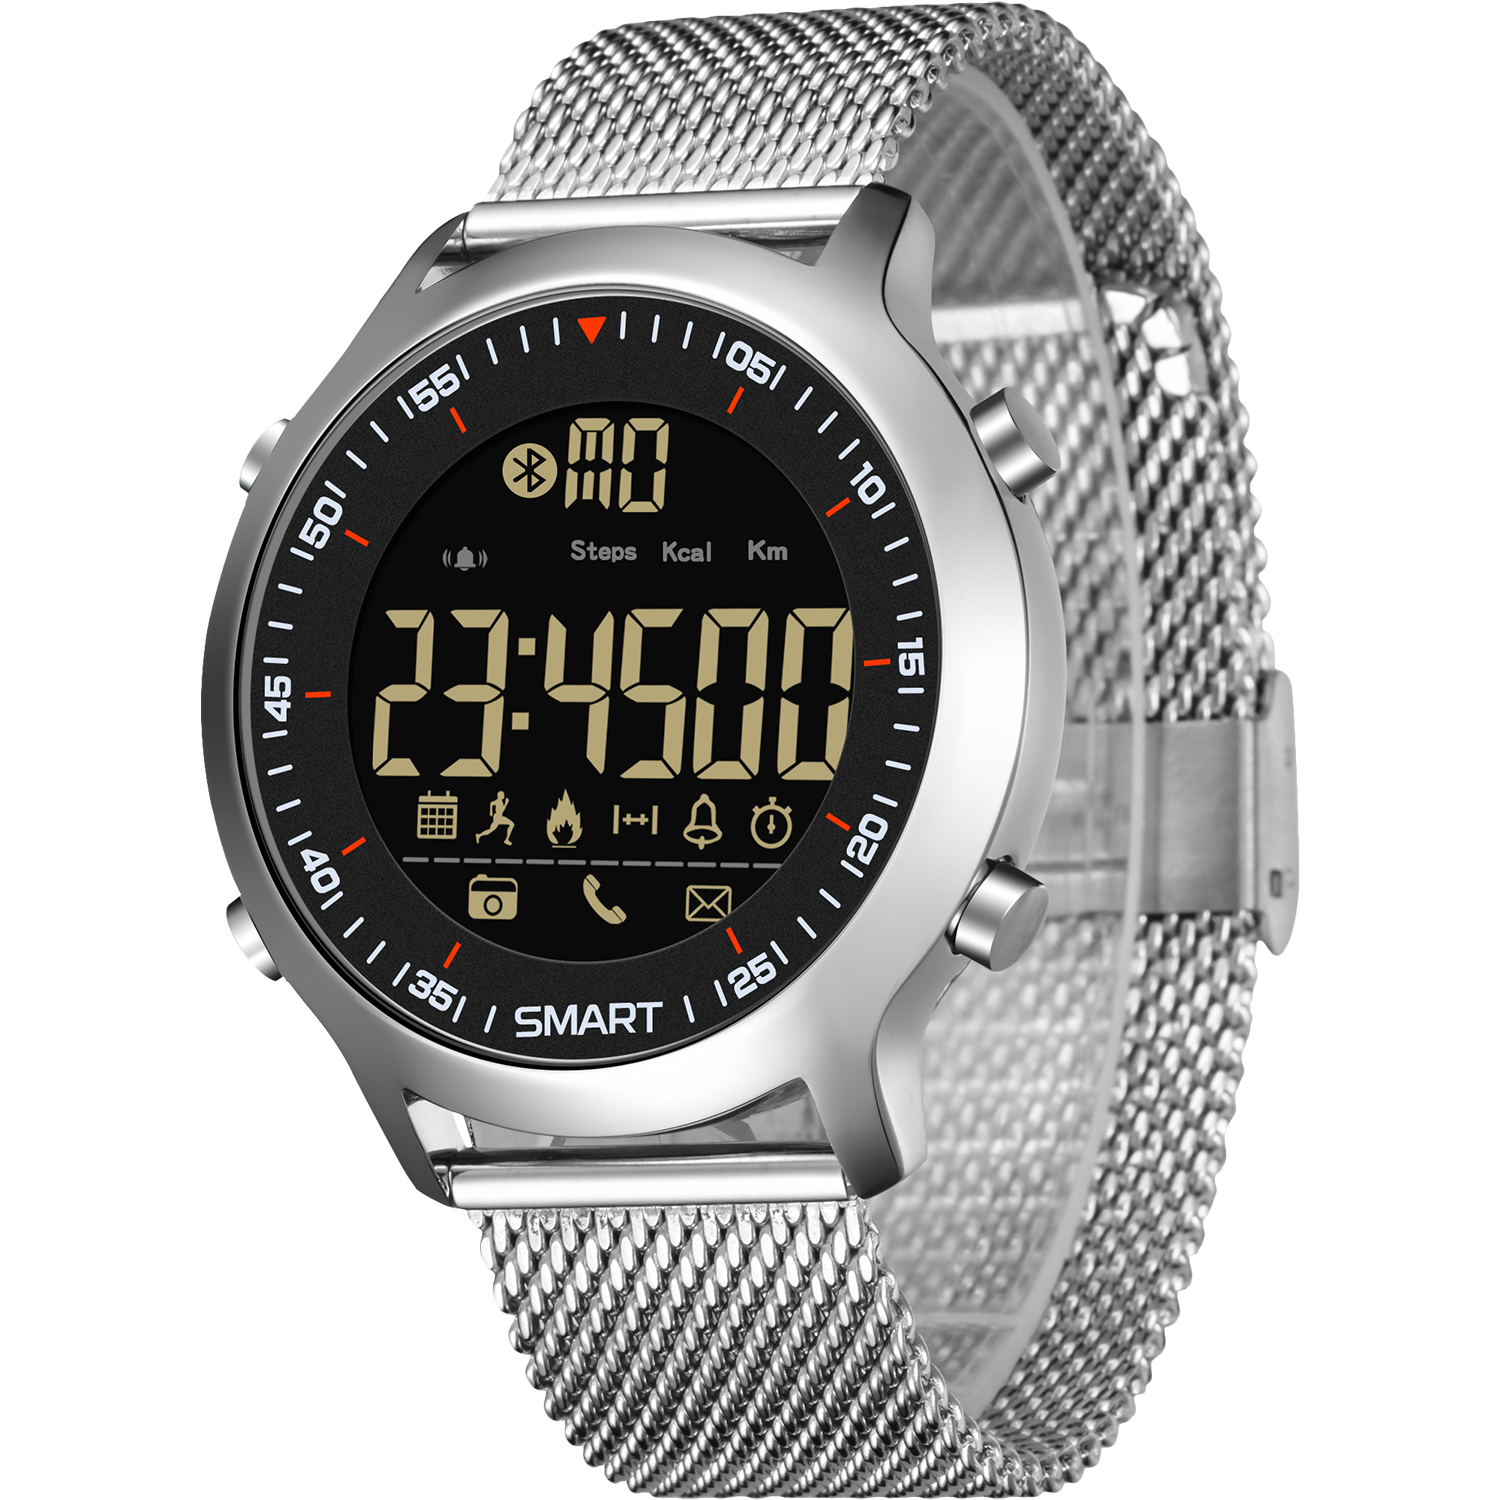 Male Smart Sport Watch Pedometer G Type Shock Outdoor Watches 50M Waterproof Digital Men Wristwatch IOS Android